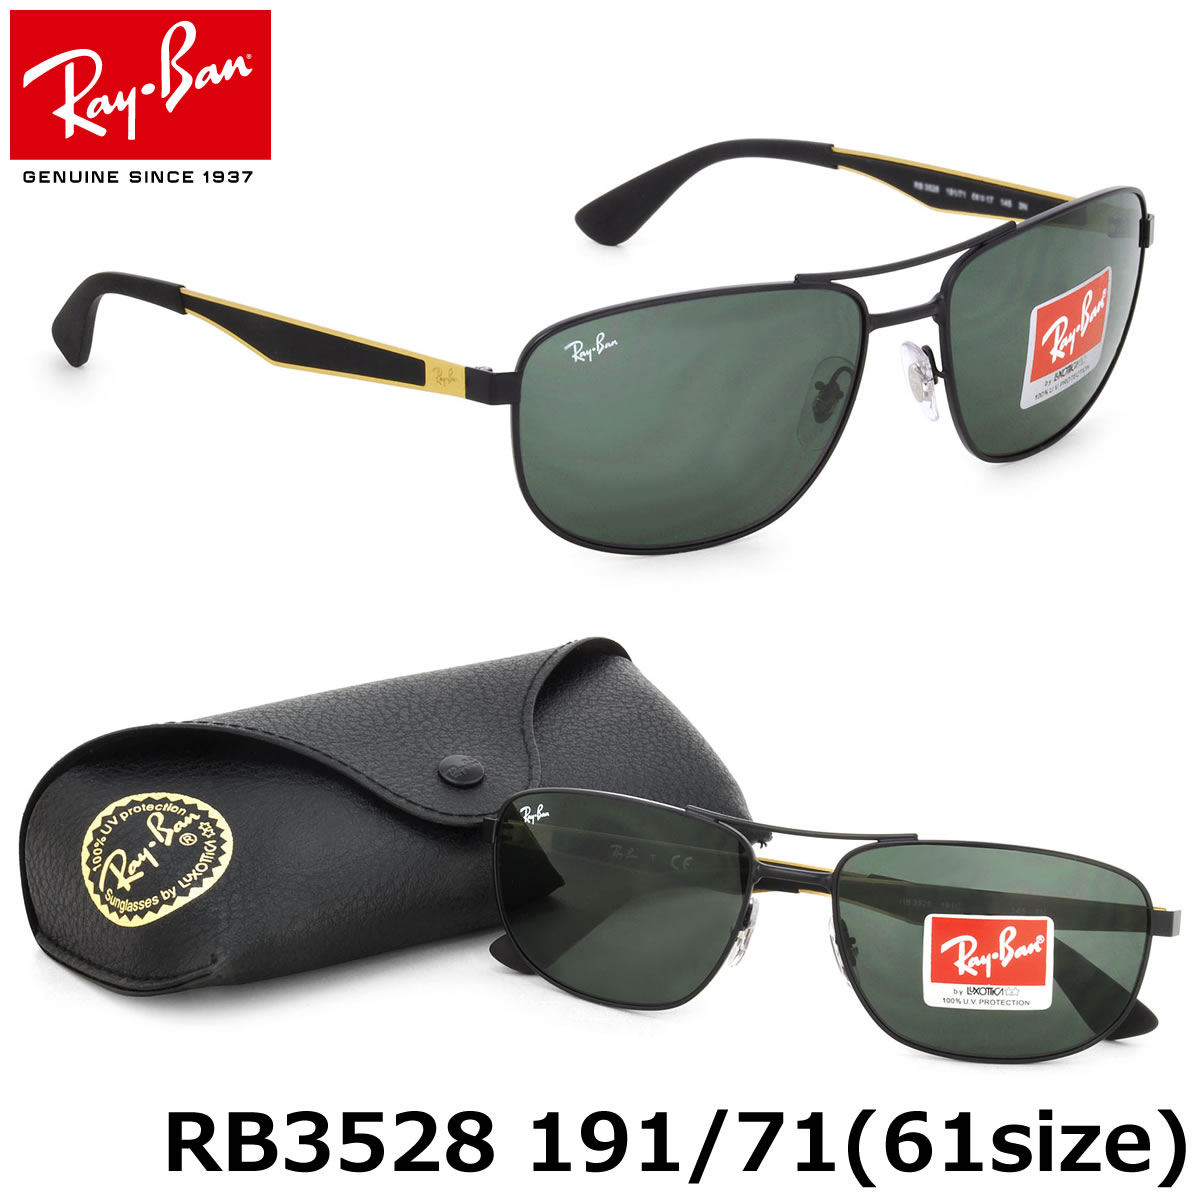 67cf4c1a07 Optical Shop Thats  Ray-Ban Sunglasses RB3528 19171 61size GENUINE ...